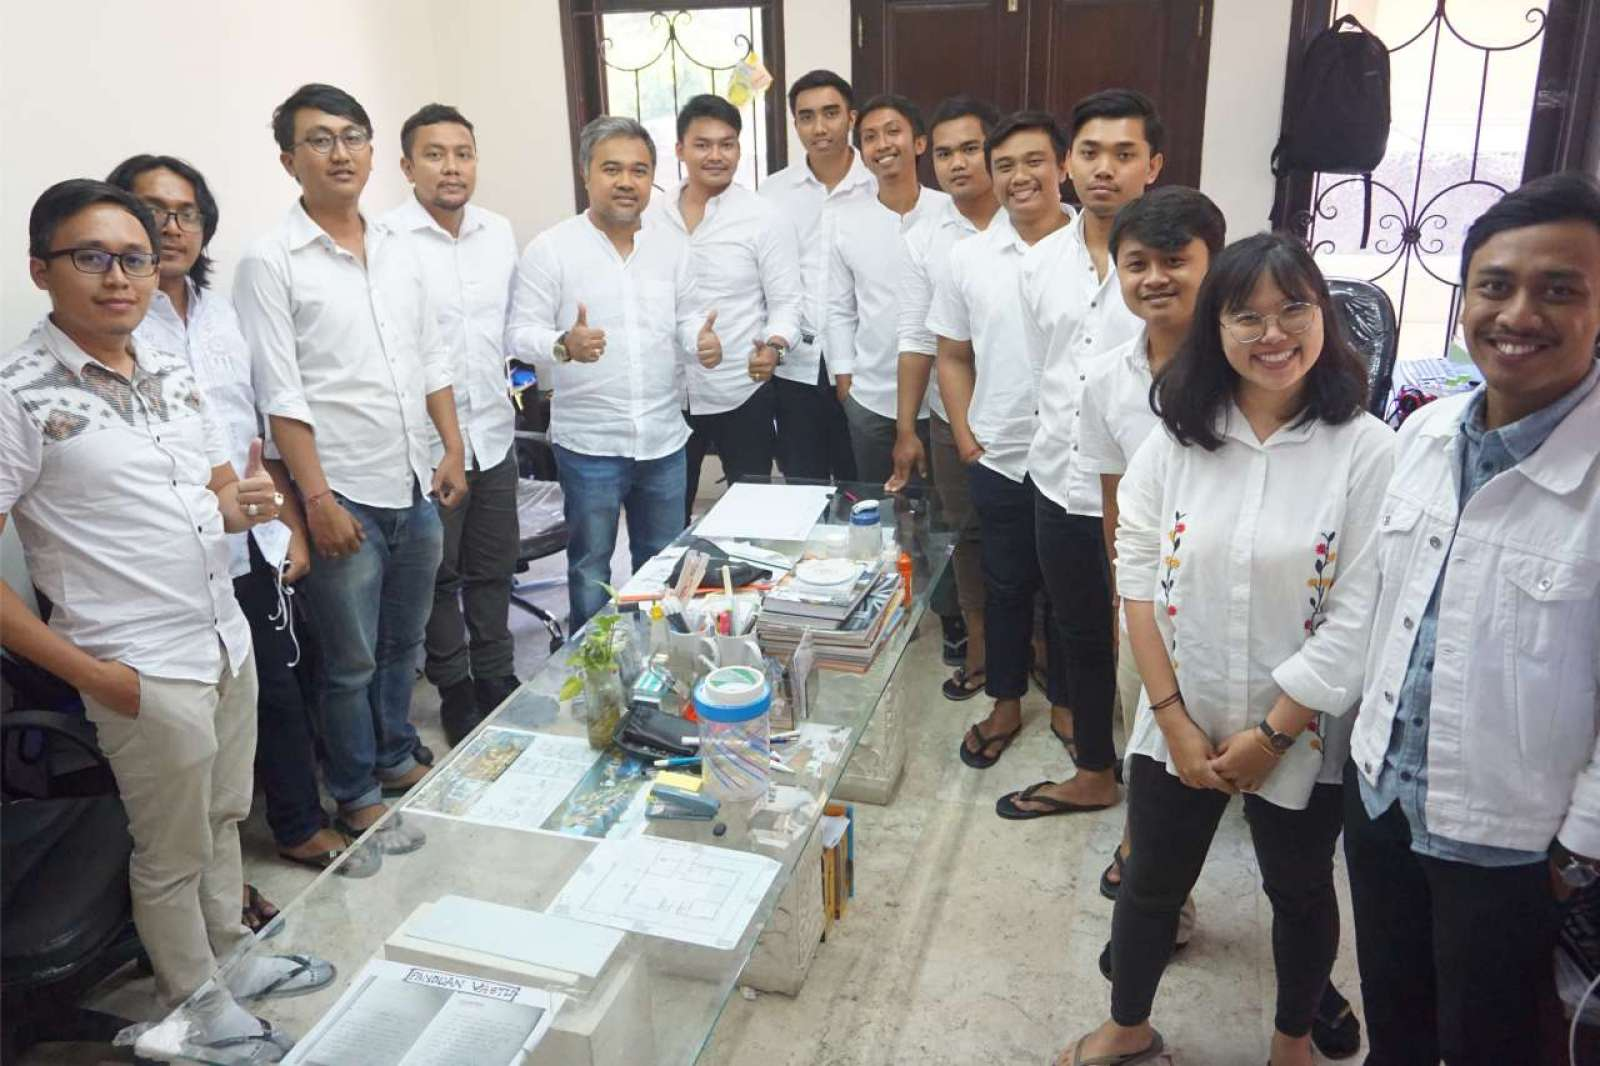 Photo with the Emporio Bali Architect Team Before Working From Home Because of the COVID-19 Virus Pa 4